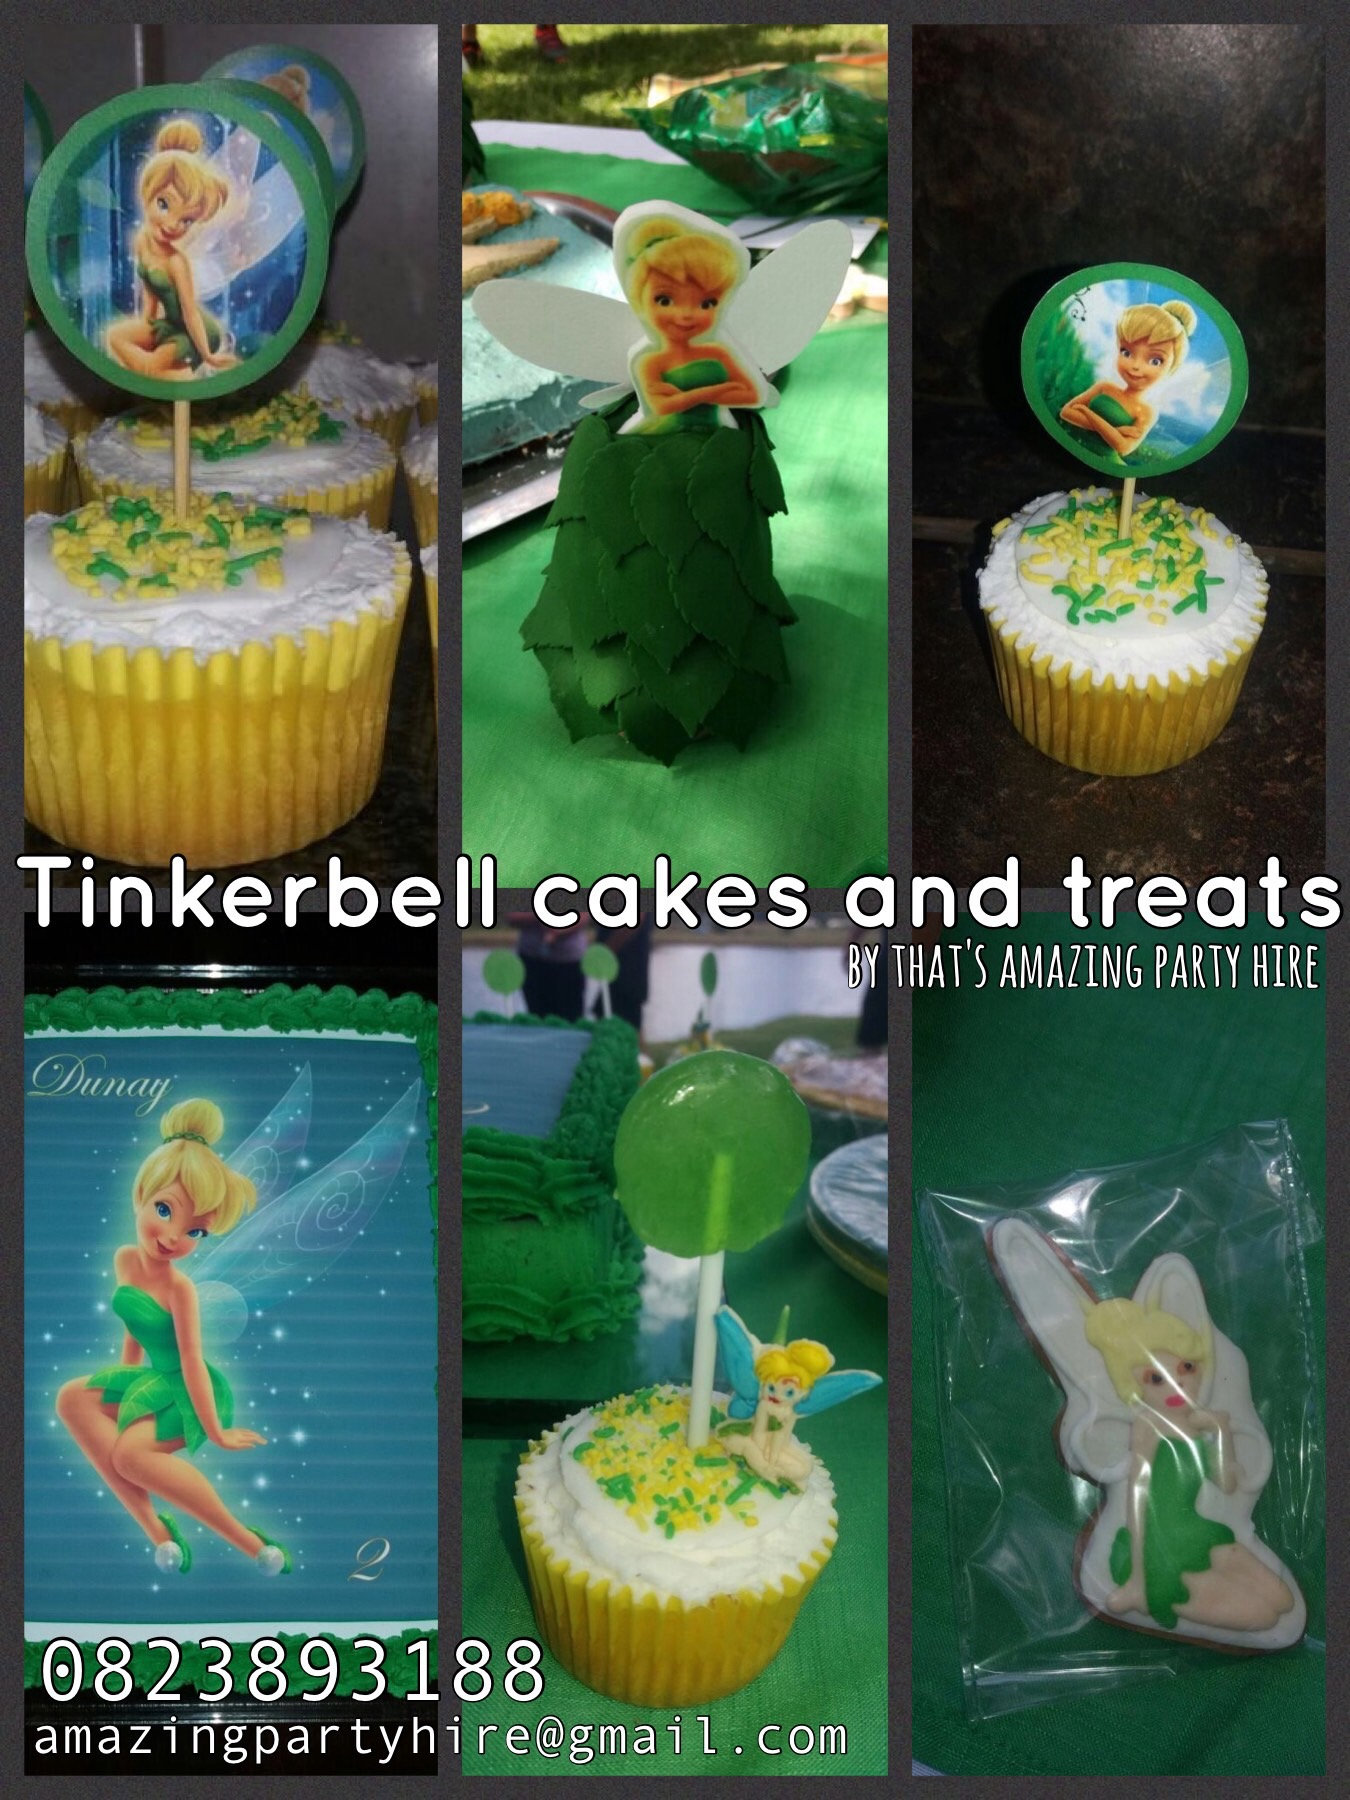 Tinkerbell Cakes and Treats